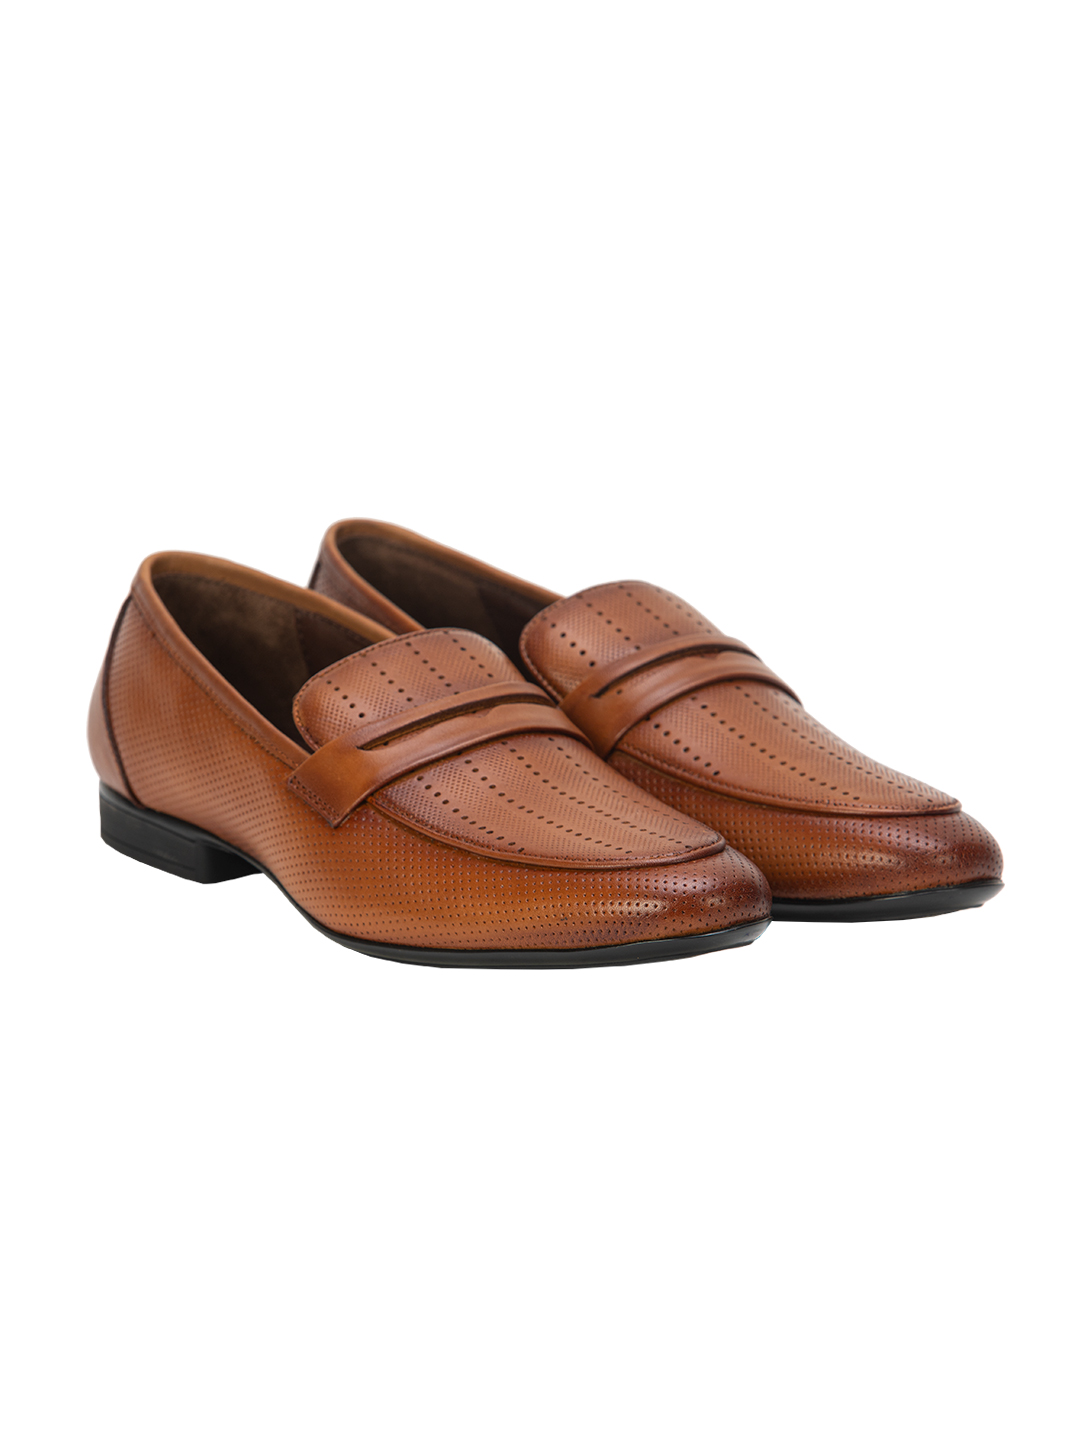 Buy Von Wellx Germany Comfort Tan Matteo Shoes Online in Dubai